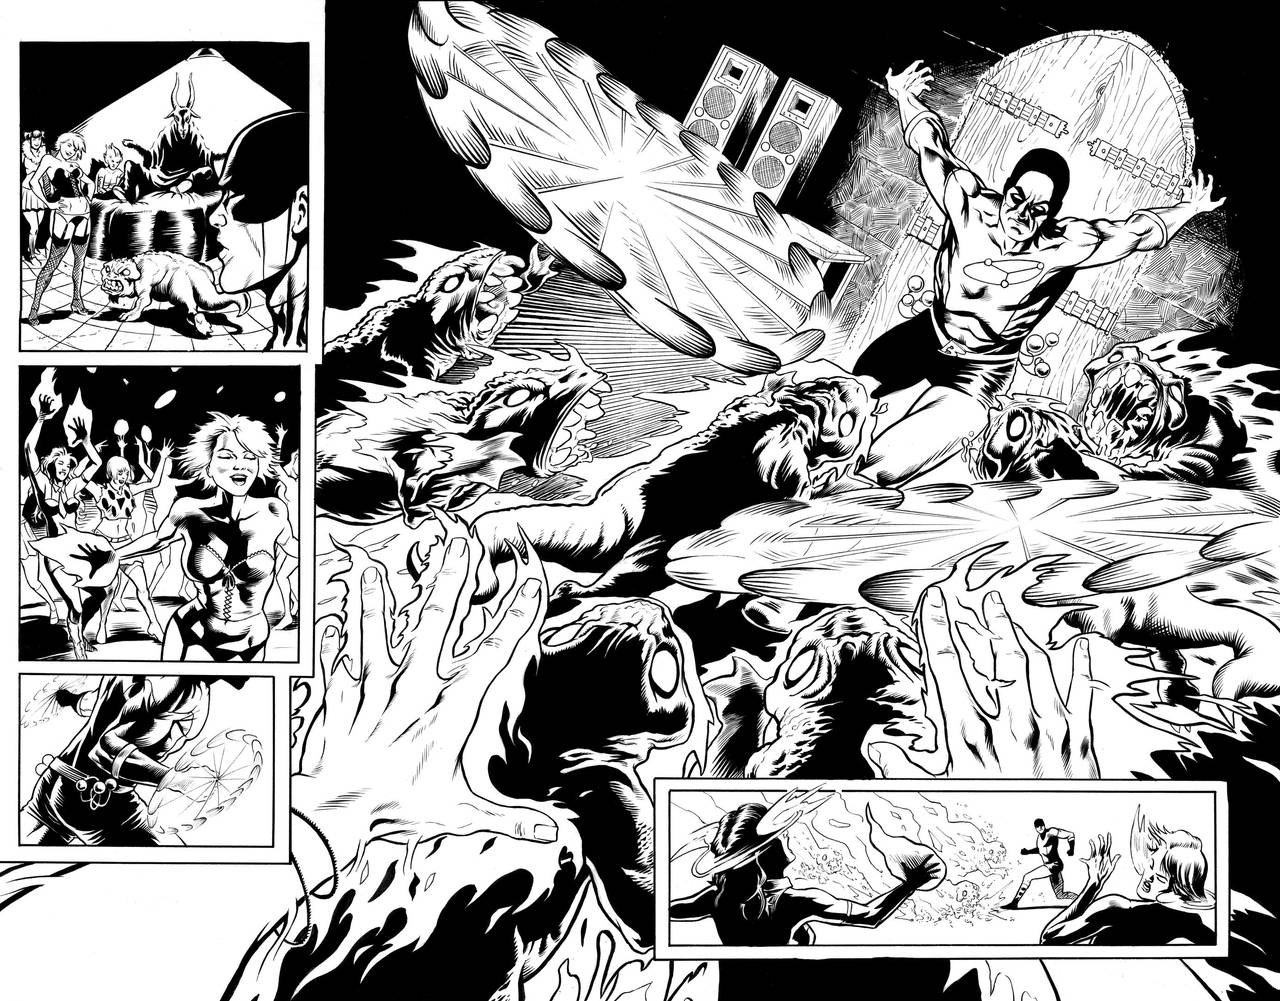 Bola Page 4-5 Inks by craigcermak